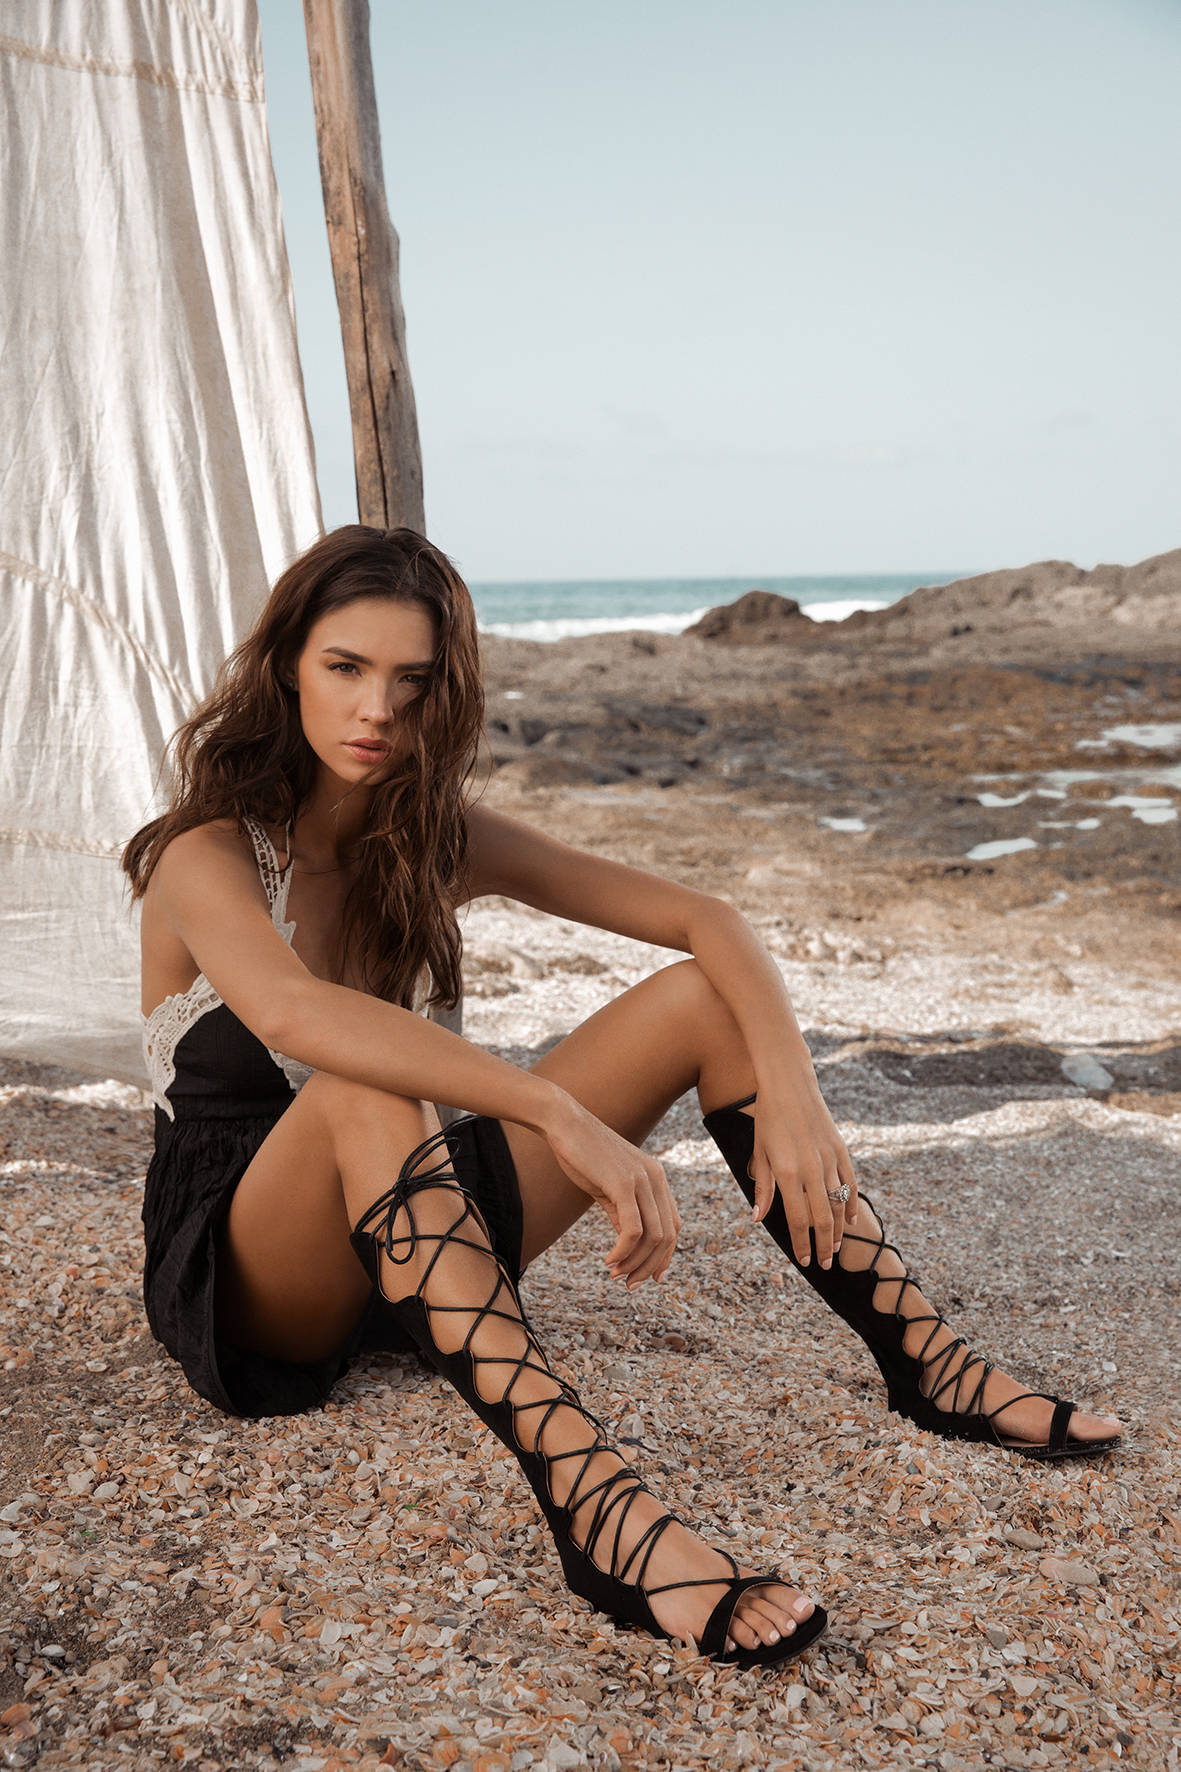 Scoop. Capsule shoe collection by Liat Ashori